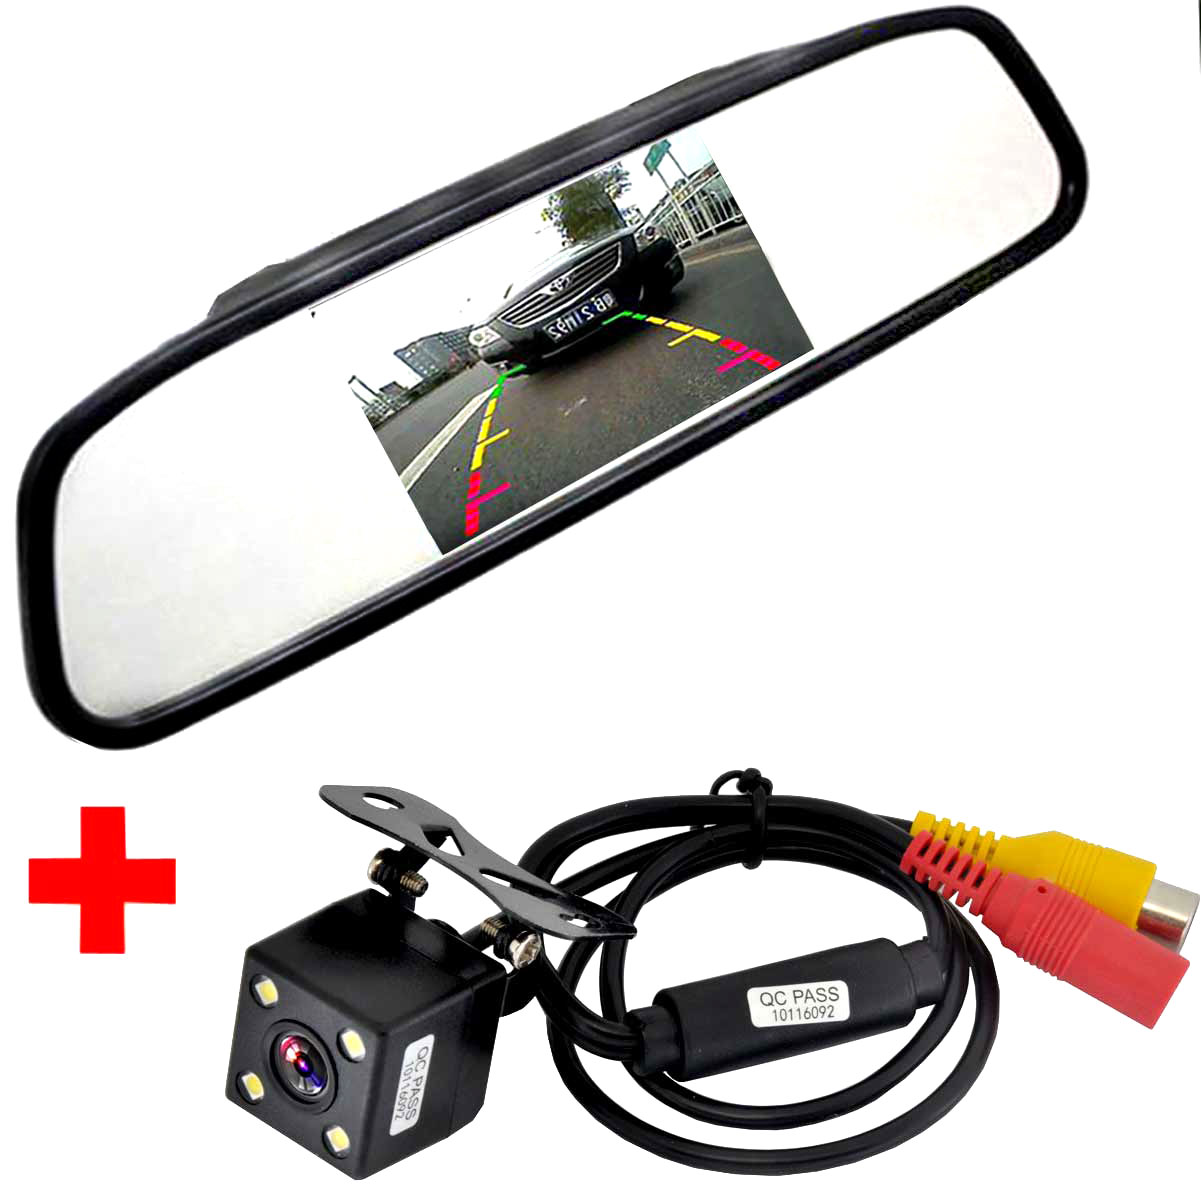 car hd video auto parking monitor led night vision reversing ccd car rear view camera with 4 3. Black Bedroom Furniture Sets. Home Design Ideas